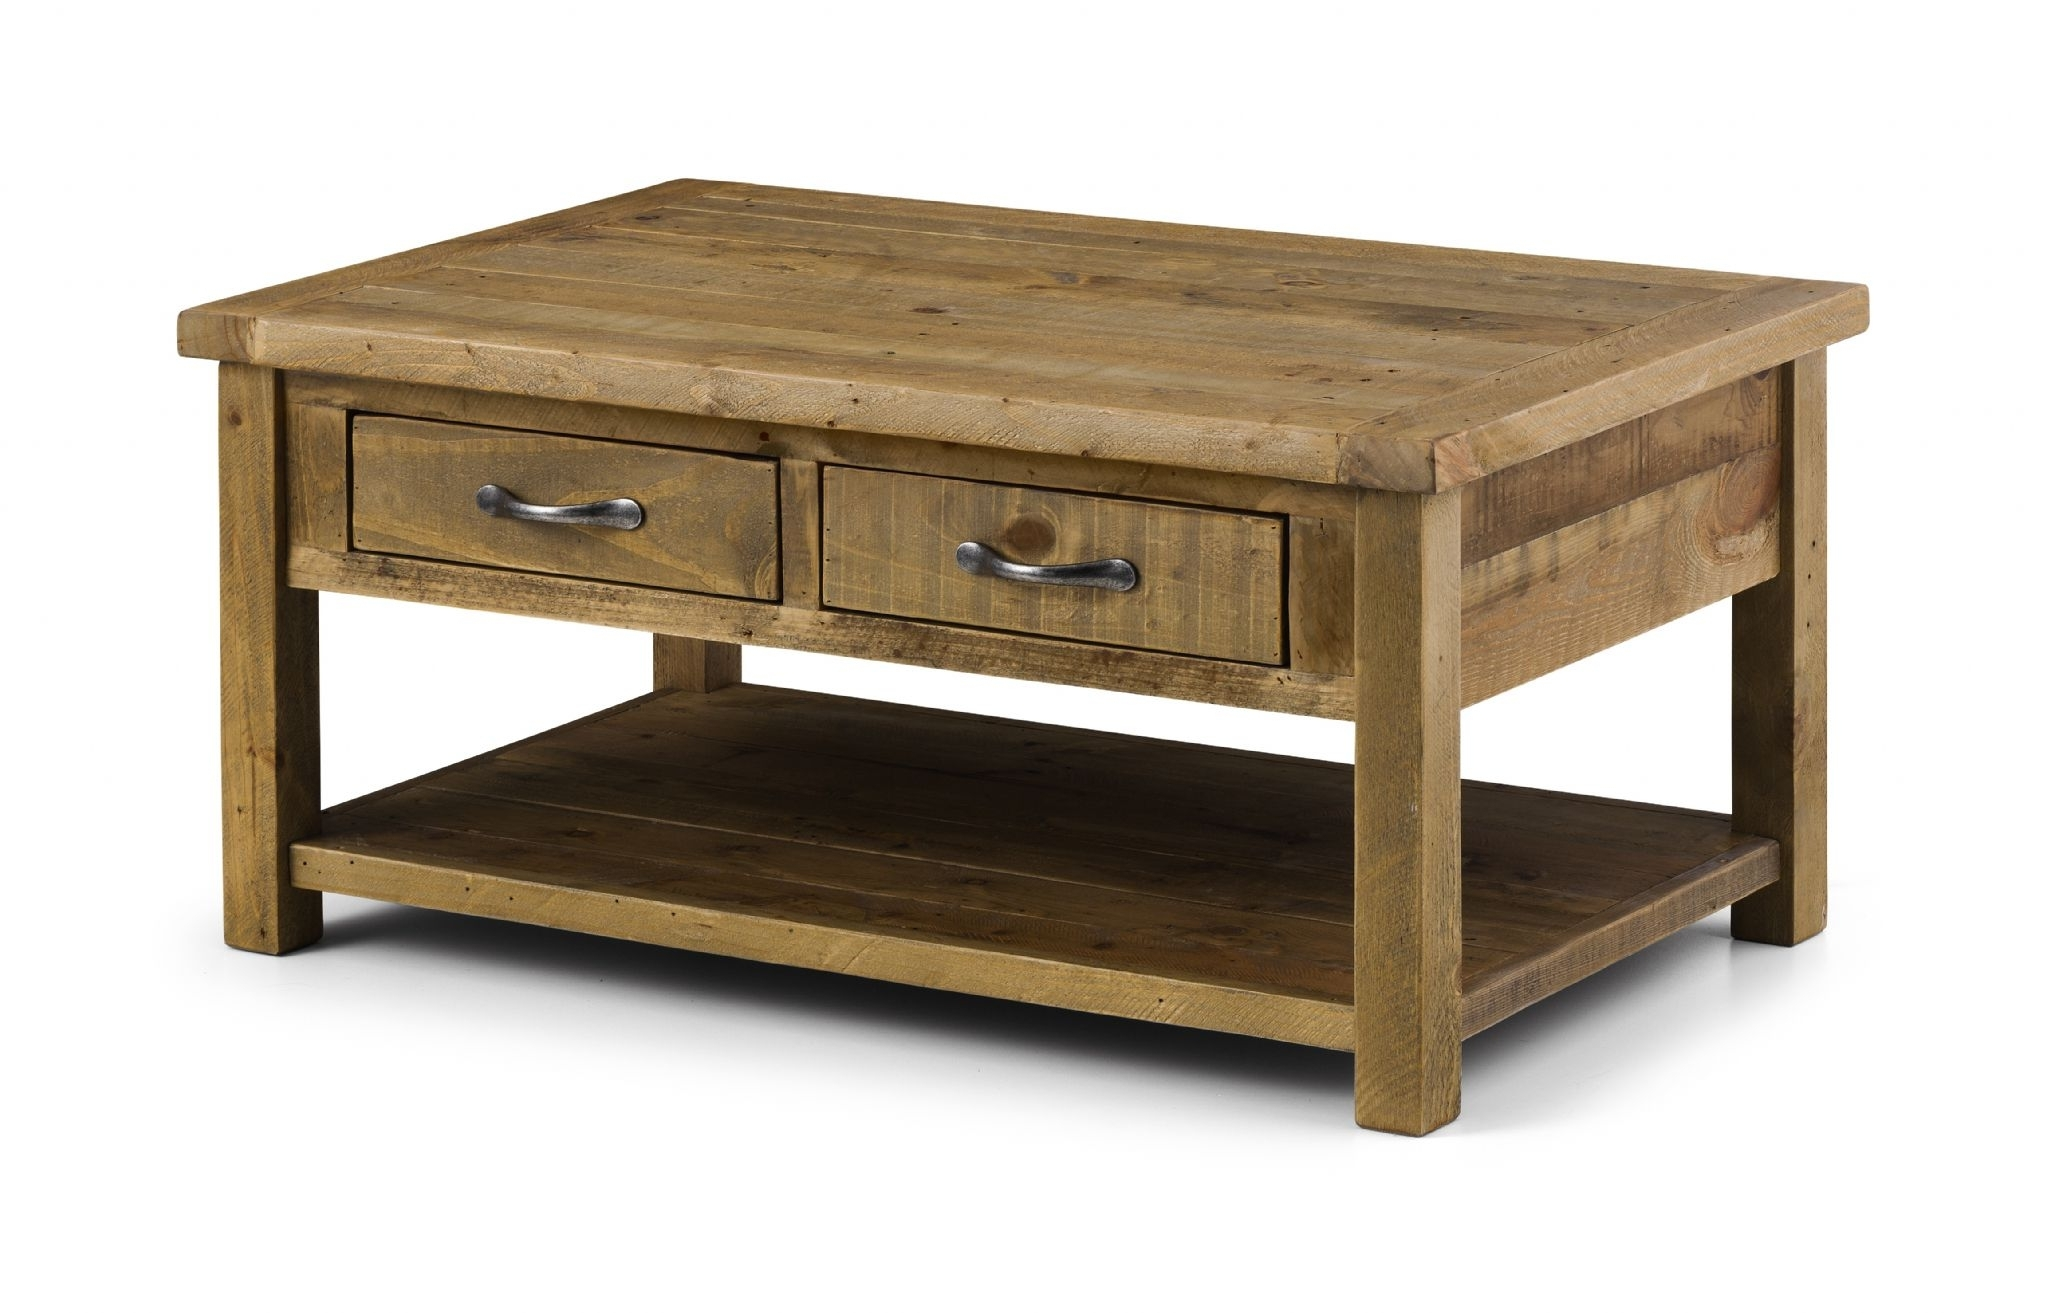 Cordoba Solid Reclaimed Pine Coffee Table With 2 Drawers Jb36 Throughout Current Reclaimed Pine Coffee Tables (View 10 of 20)